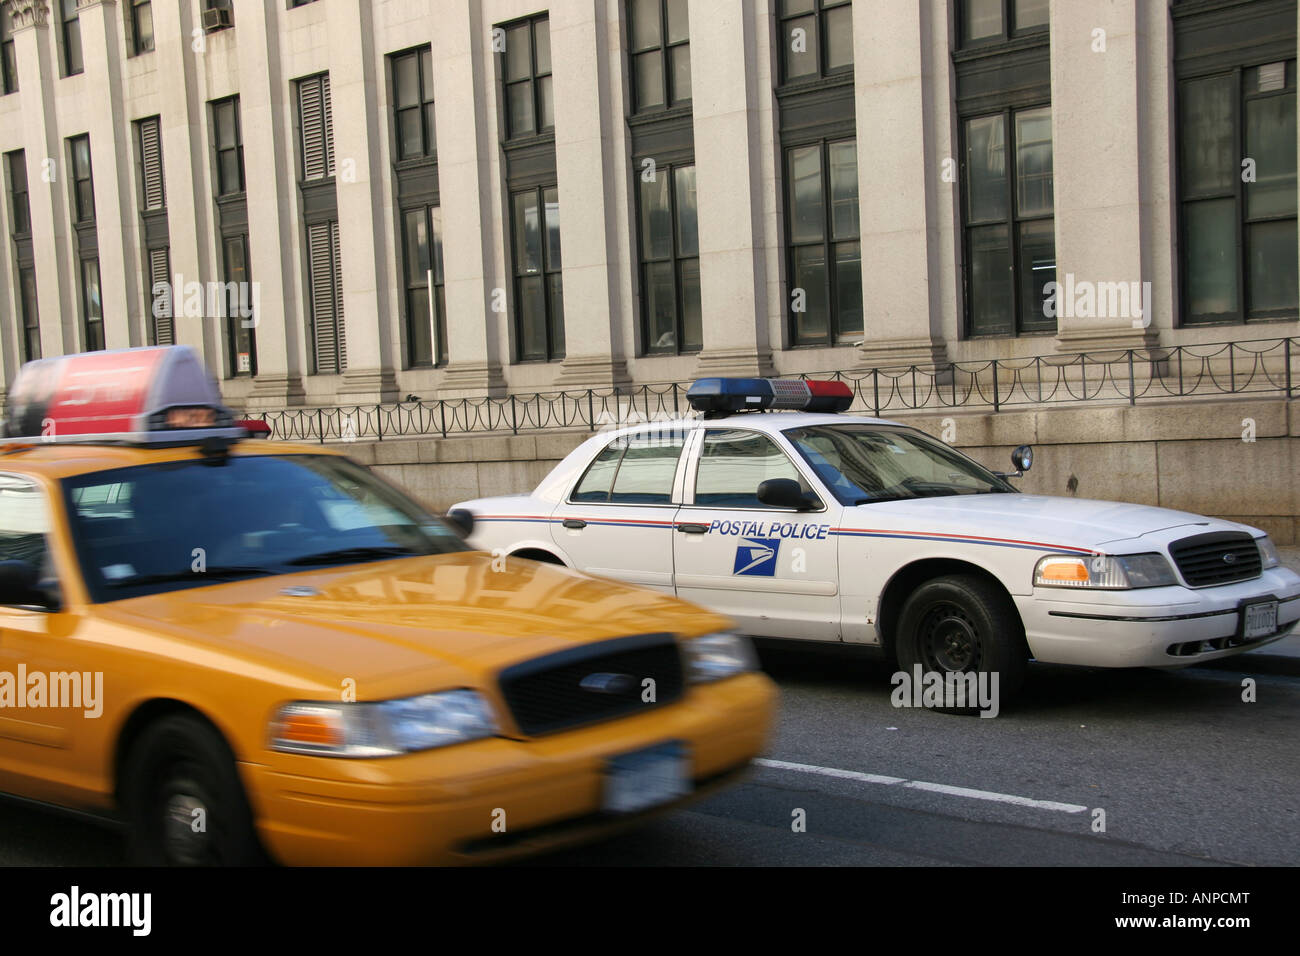 New York taxi and Postal Police car Stock Photo